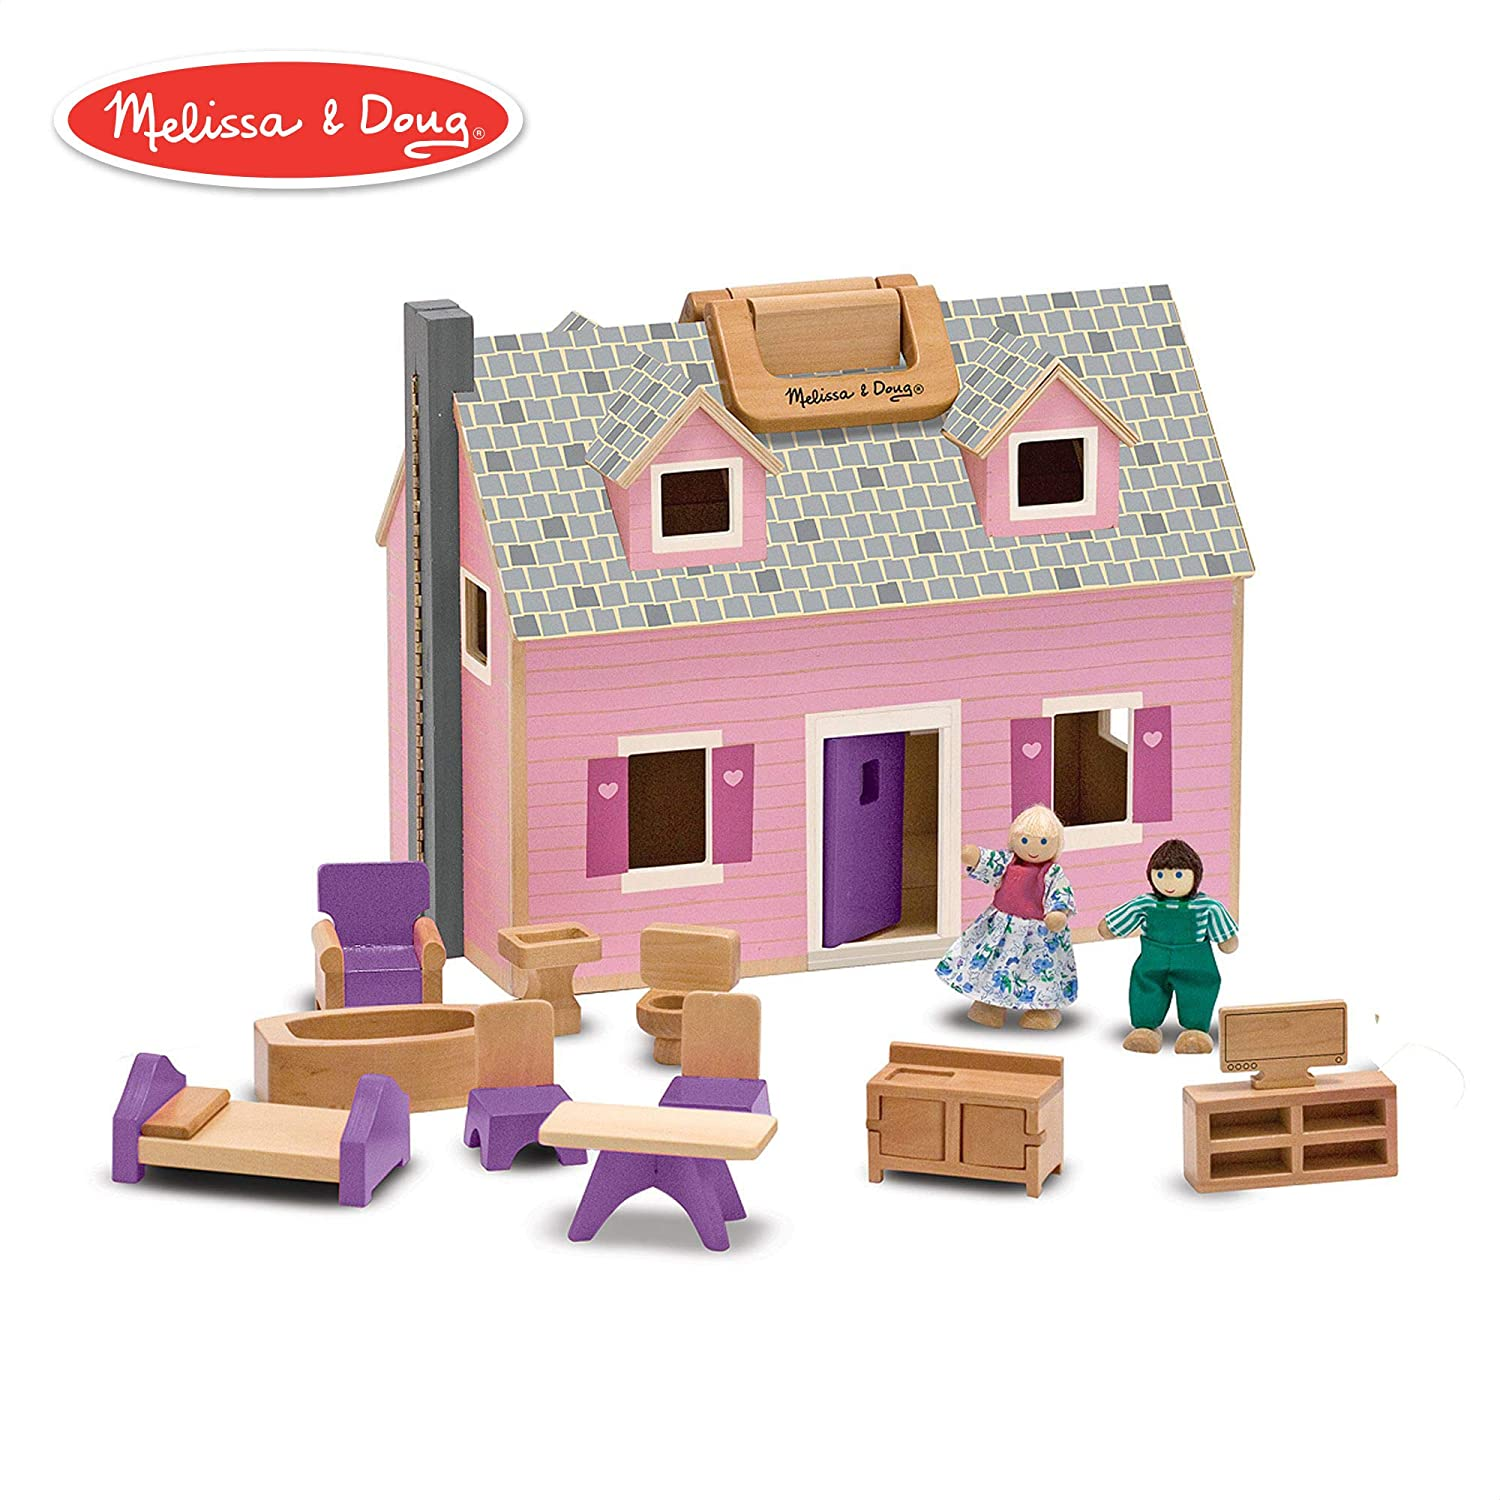 Top 9 Best Dollhouse for Toddlers Reviews in 2021 11